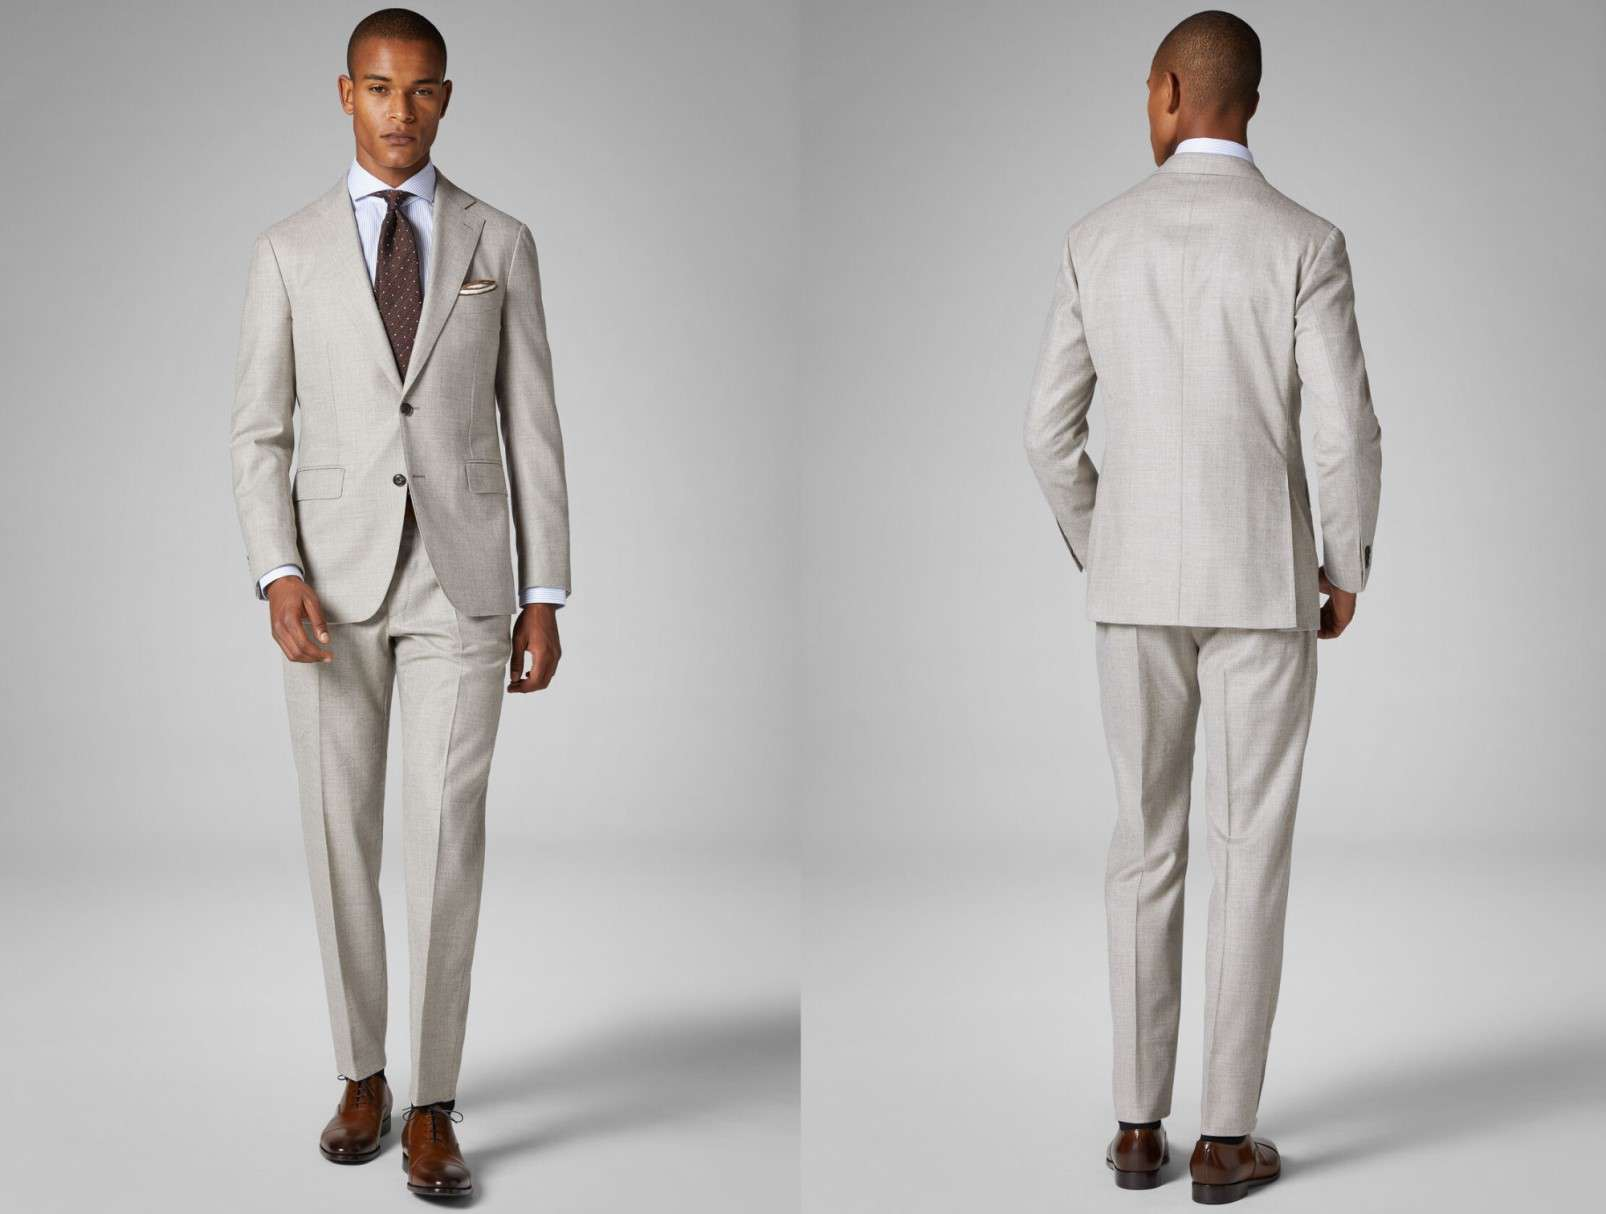 shoes to wear with suits, light grey suit, brown shoes